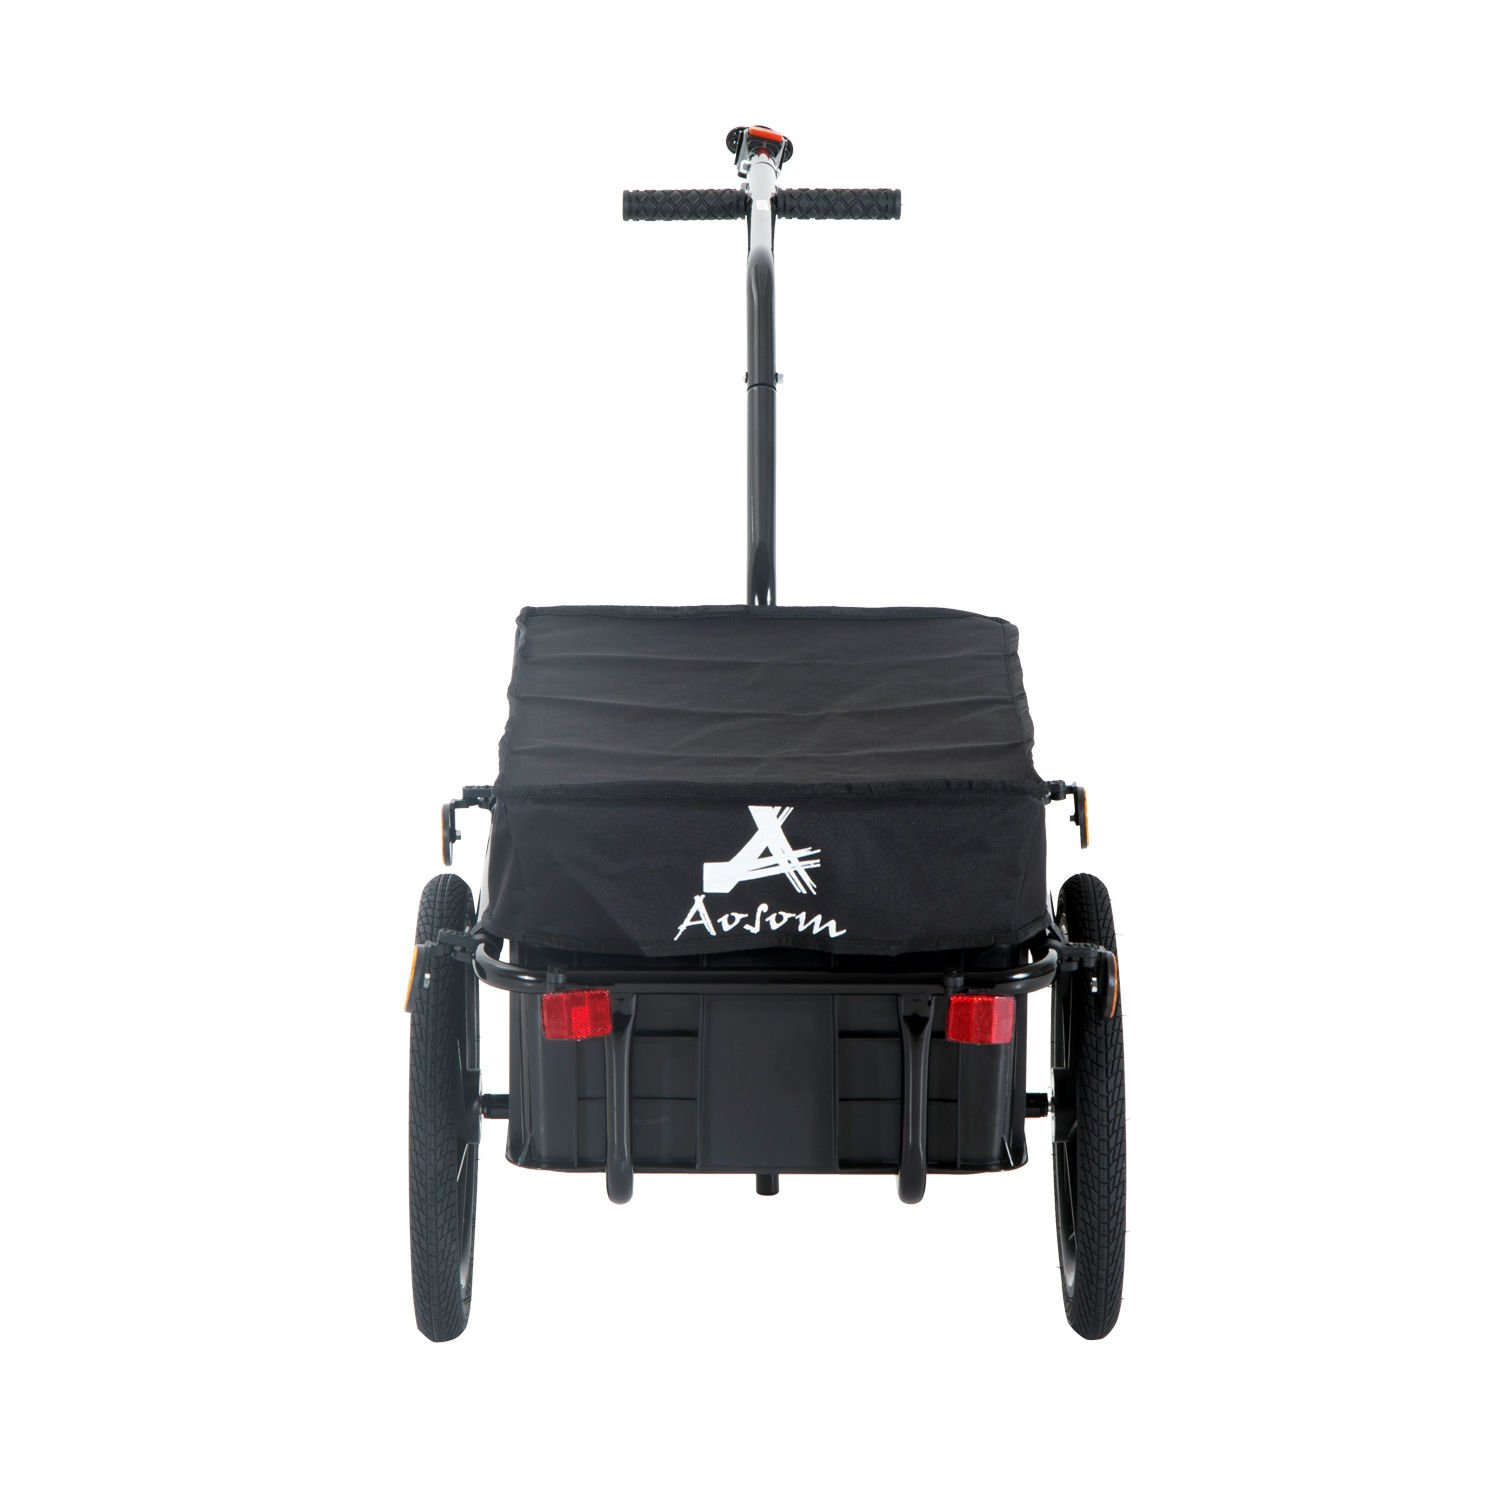 Aosom Enclosed Bicycle Cargo Trailer - Black by Aosom (Image #7)